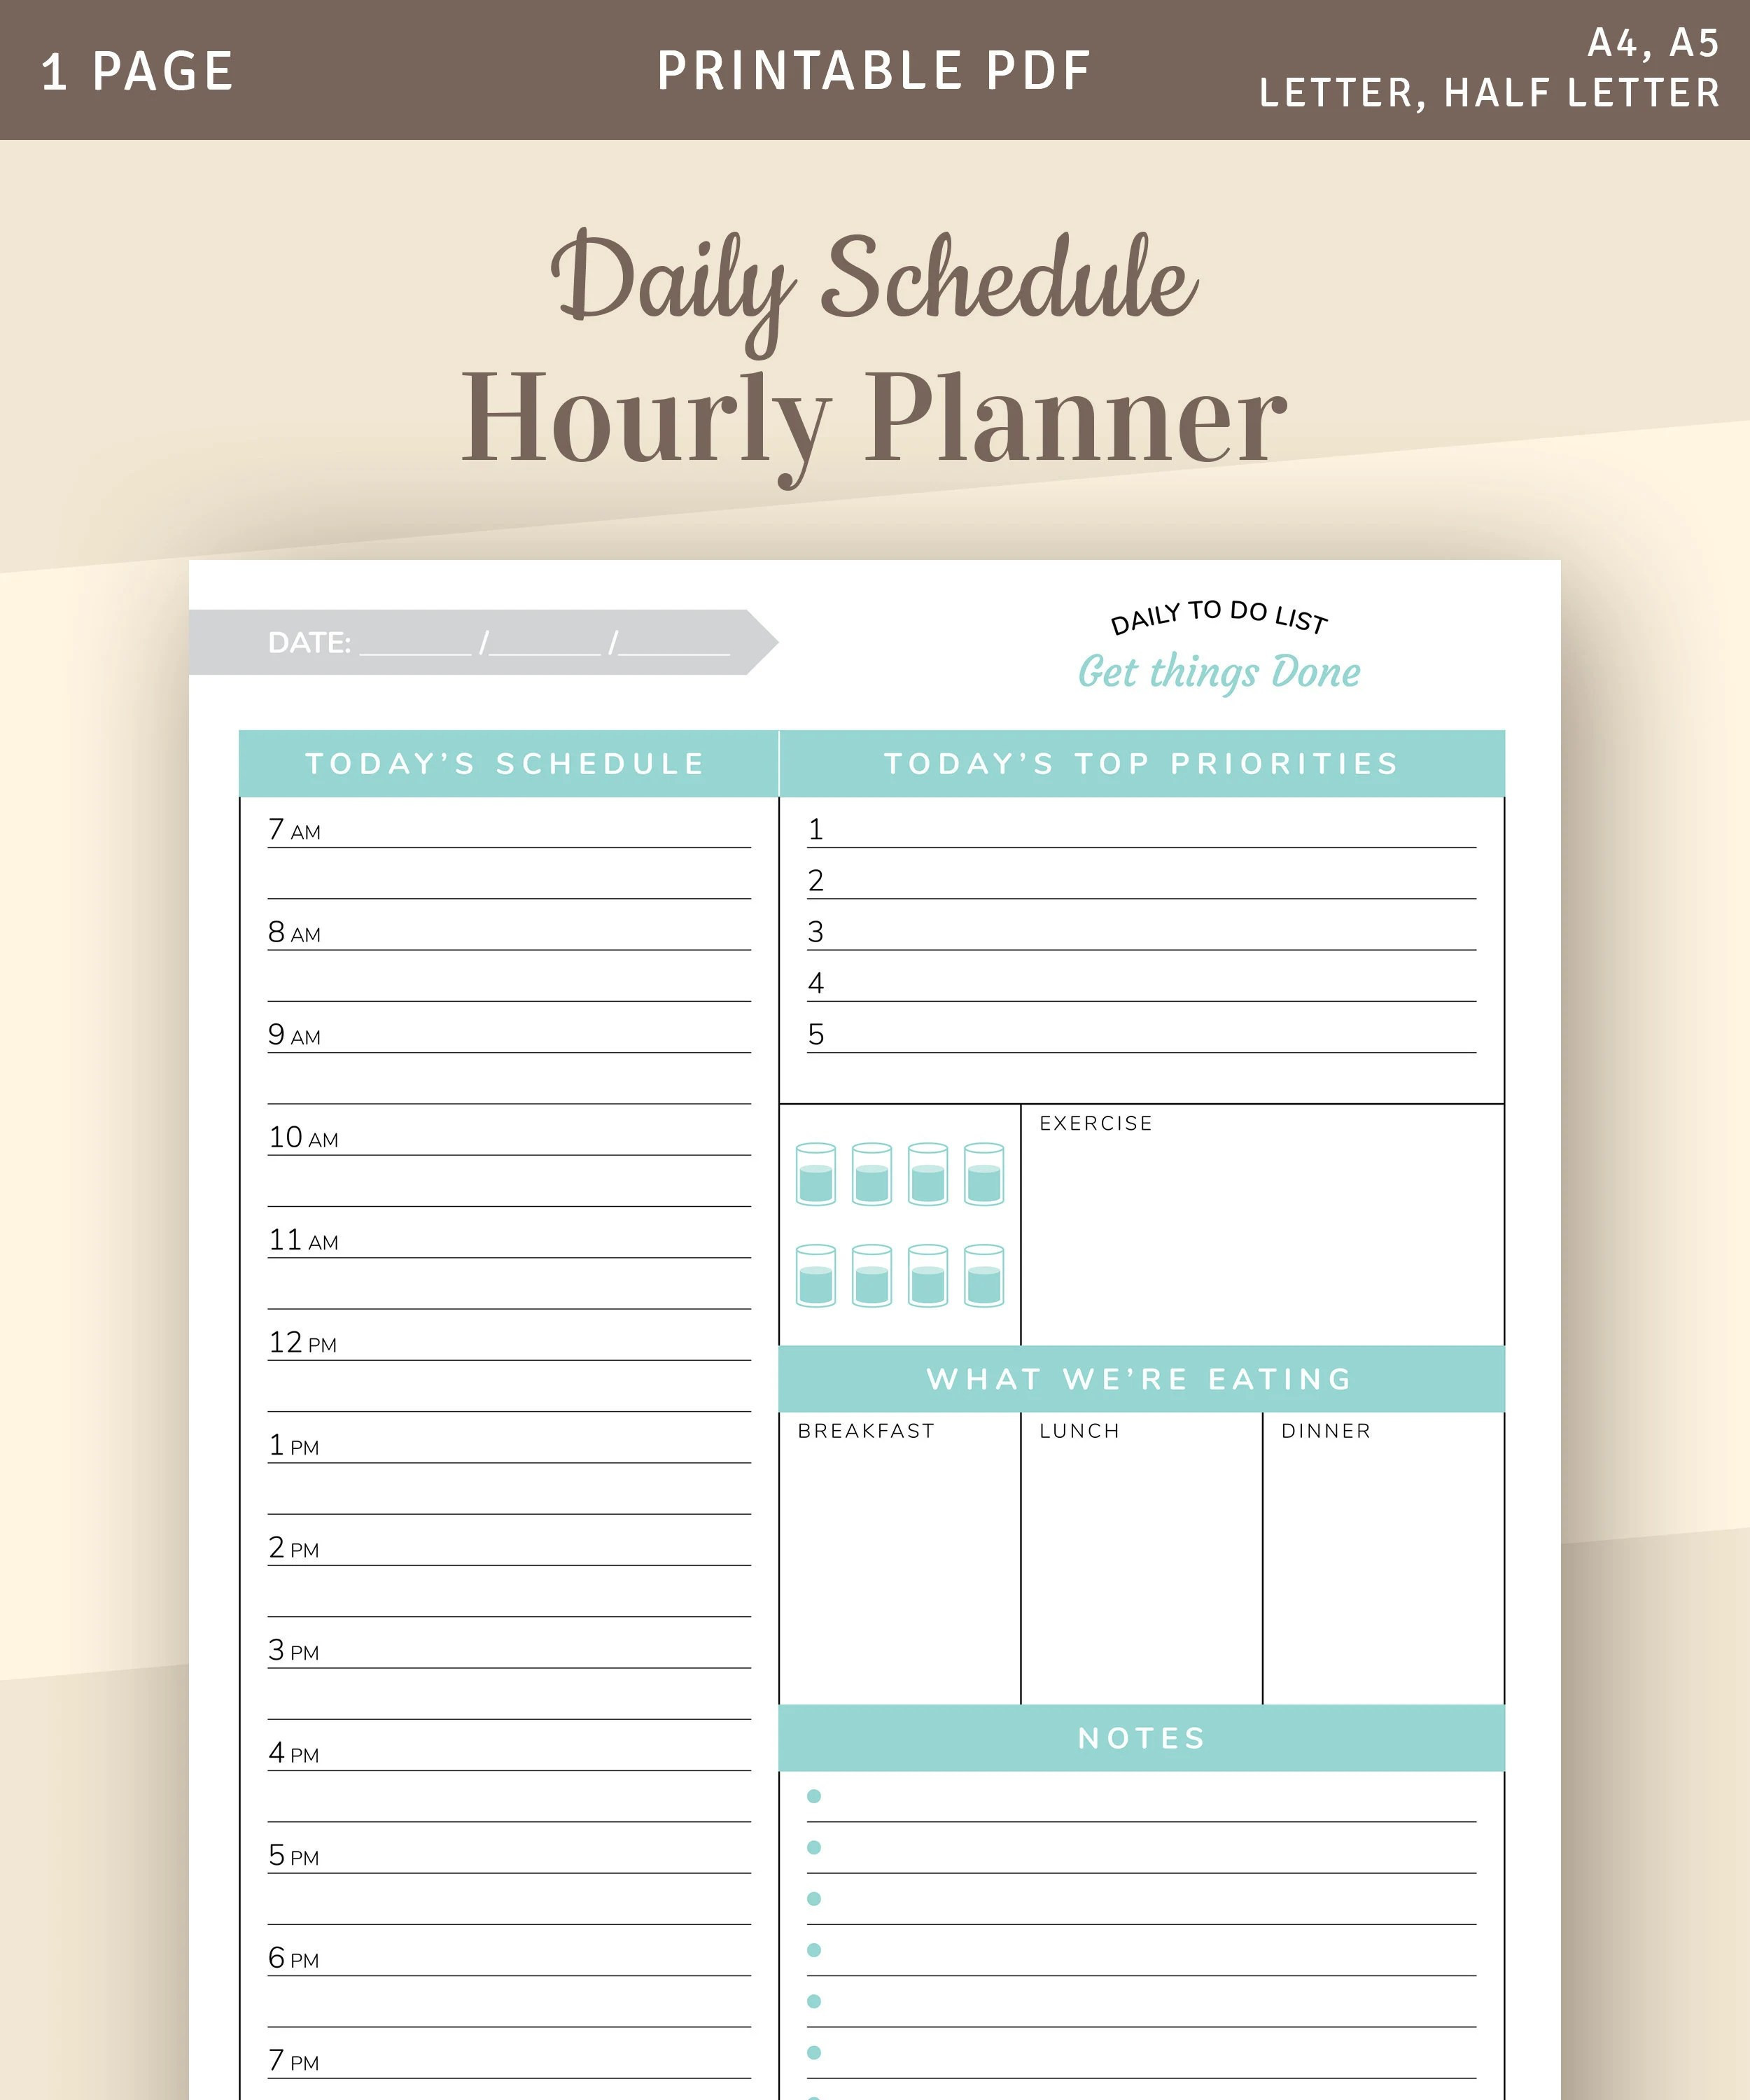 Daily Planner 2020 Daily Planner Printable Template With Top Daily Priorities Daily Schedule Hourly Planner Agenda Template Pdf